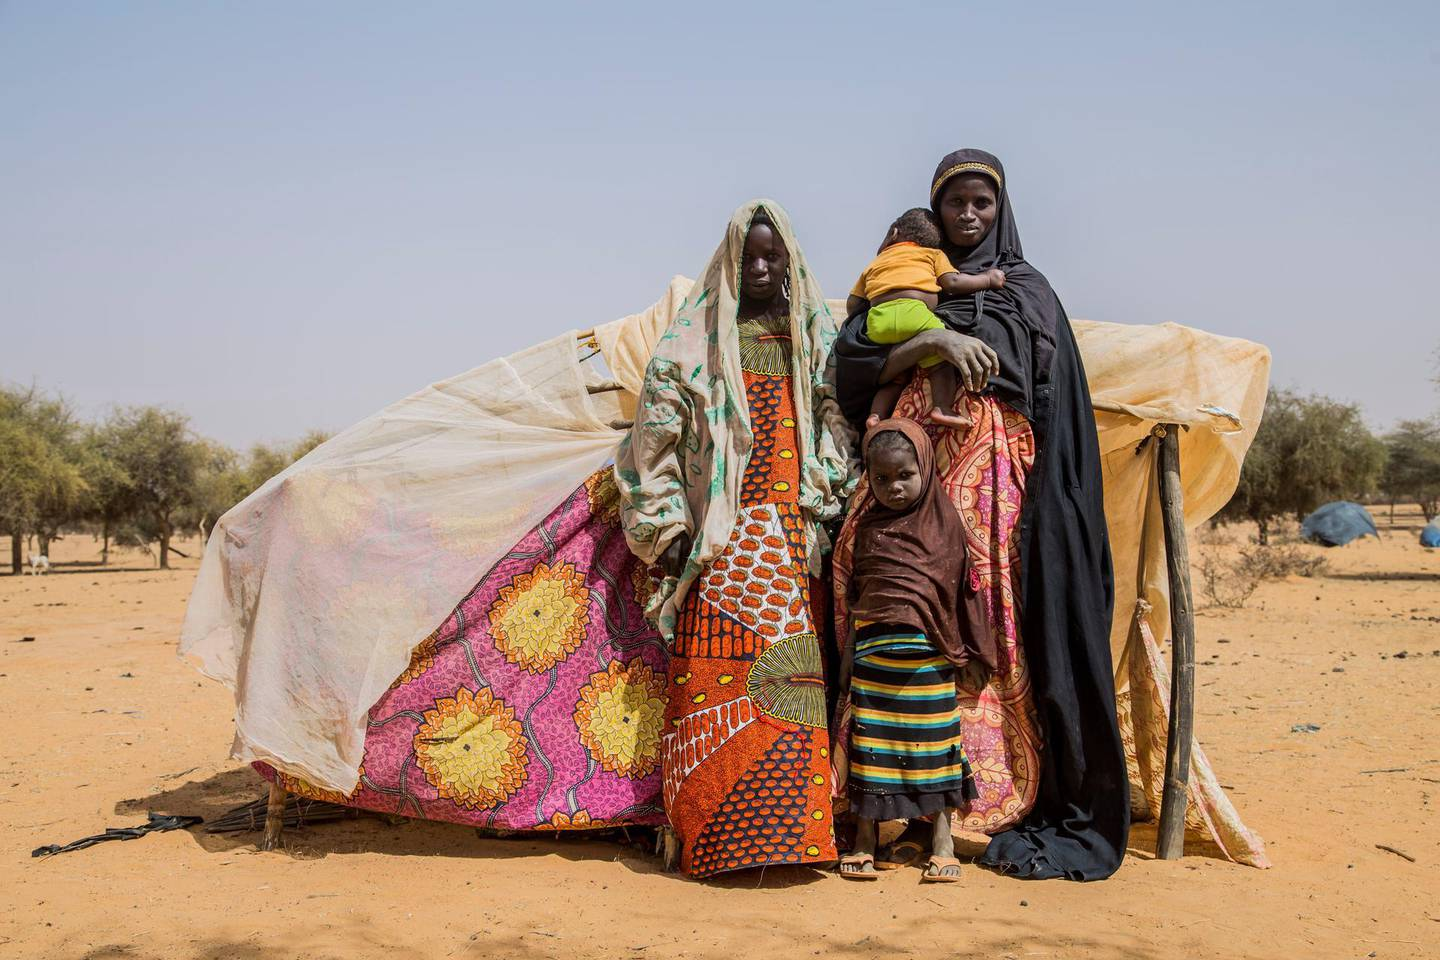 6. MaliAigachatou, a single mother and her children, standing in front of their makeshift tent after fleeing violence in Timbuktu in Mali.Photo: Togo Moise/NRC